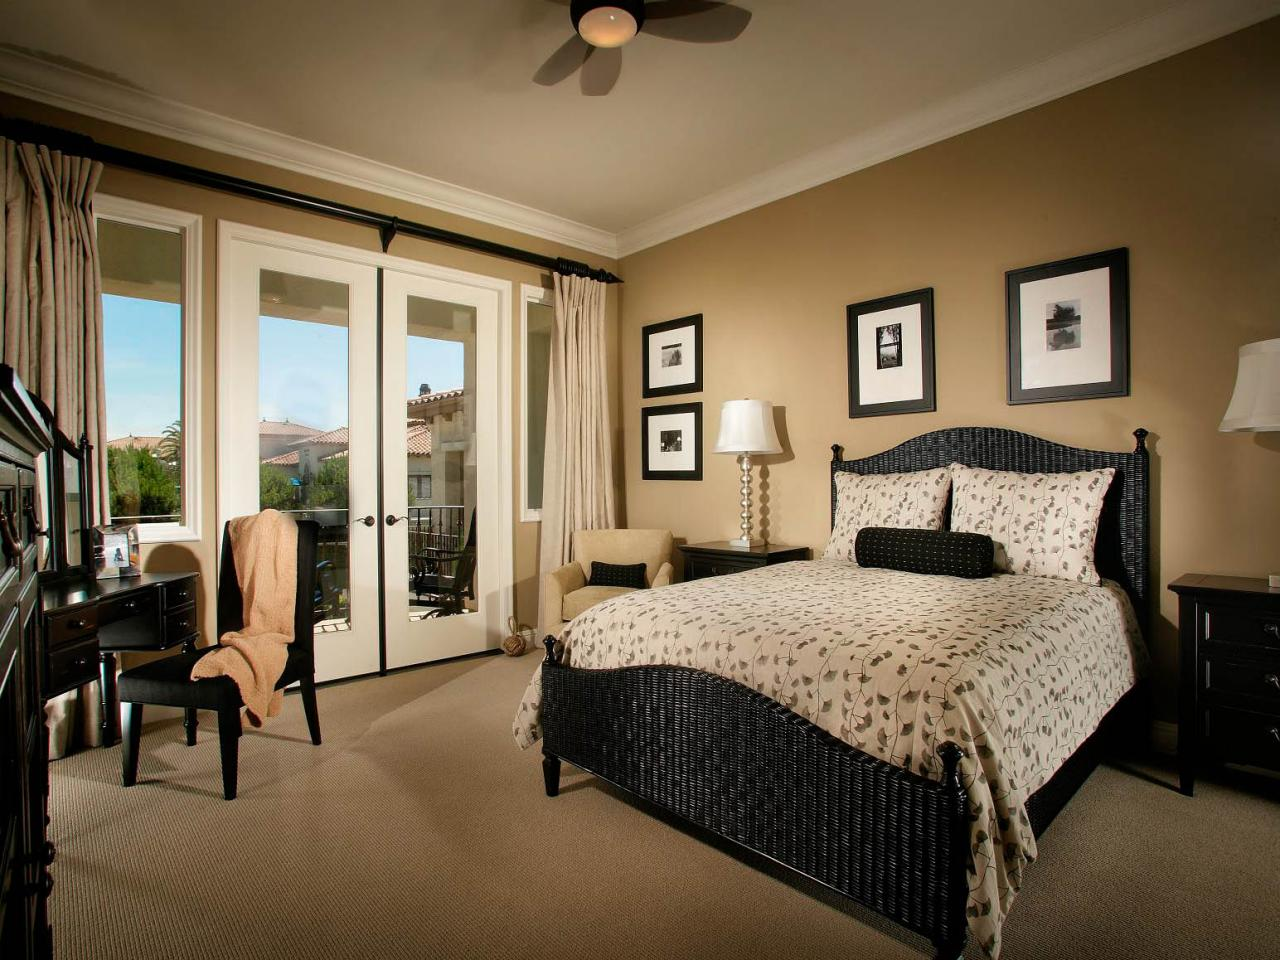 Photos hgtv for Black and beige bedroom ideas